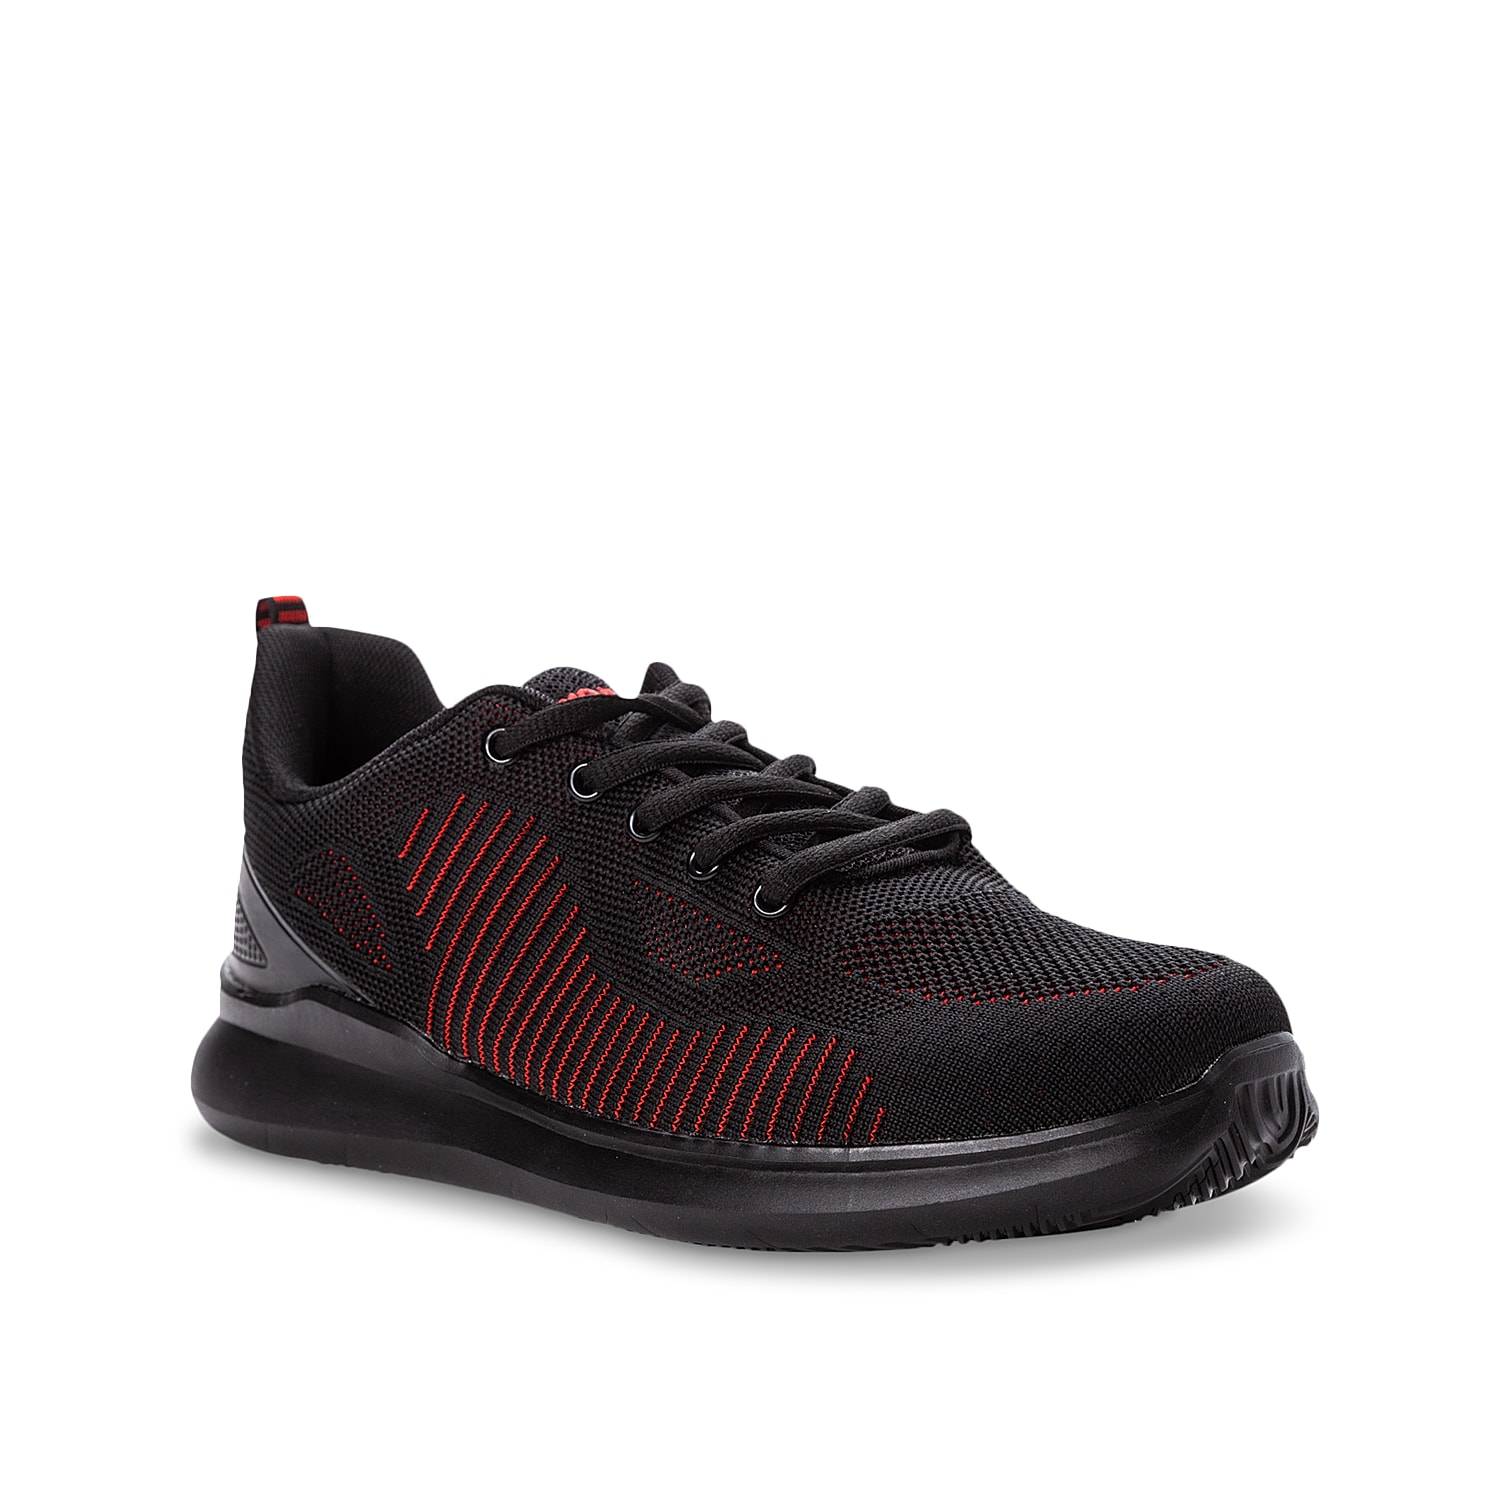 Show off your sporty style with the Viator Fuse sneaker from Propet. Featuring an open cell foam footbed embedded with EVA cushioning, this lace-up will keep you extra comfortable.